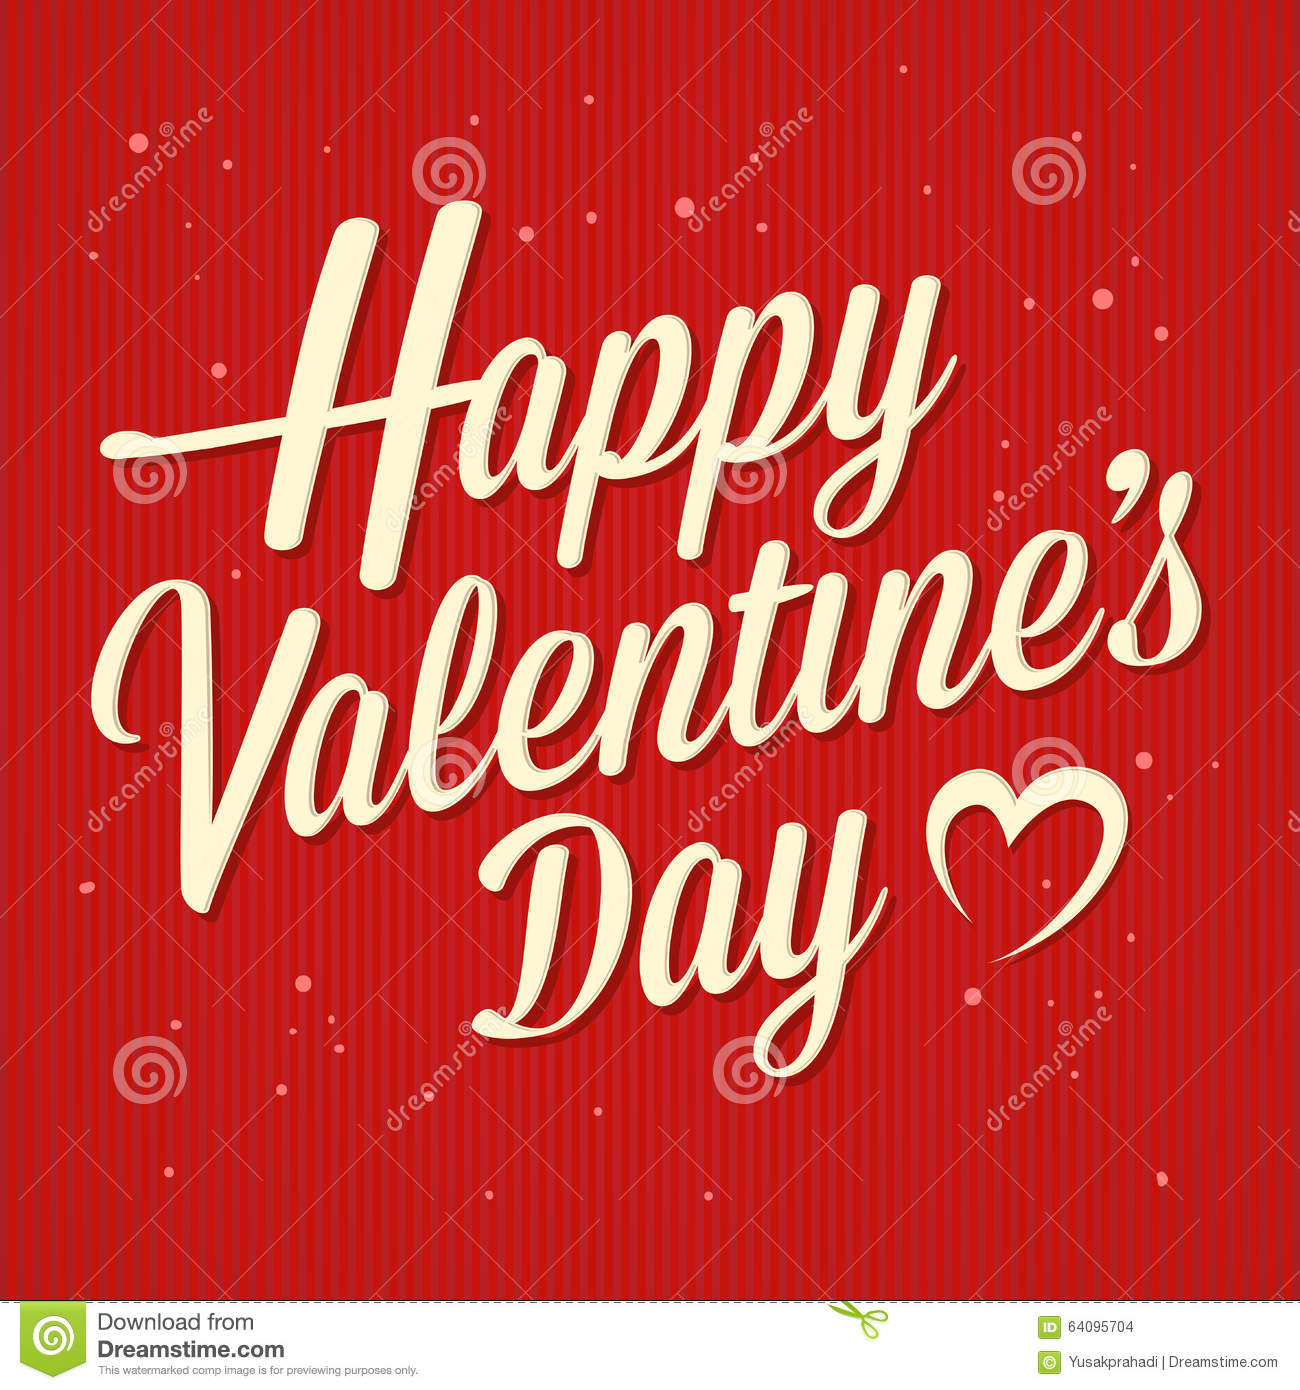 Happy Valentines Day Greetings Text Stock Vector Illustration Of